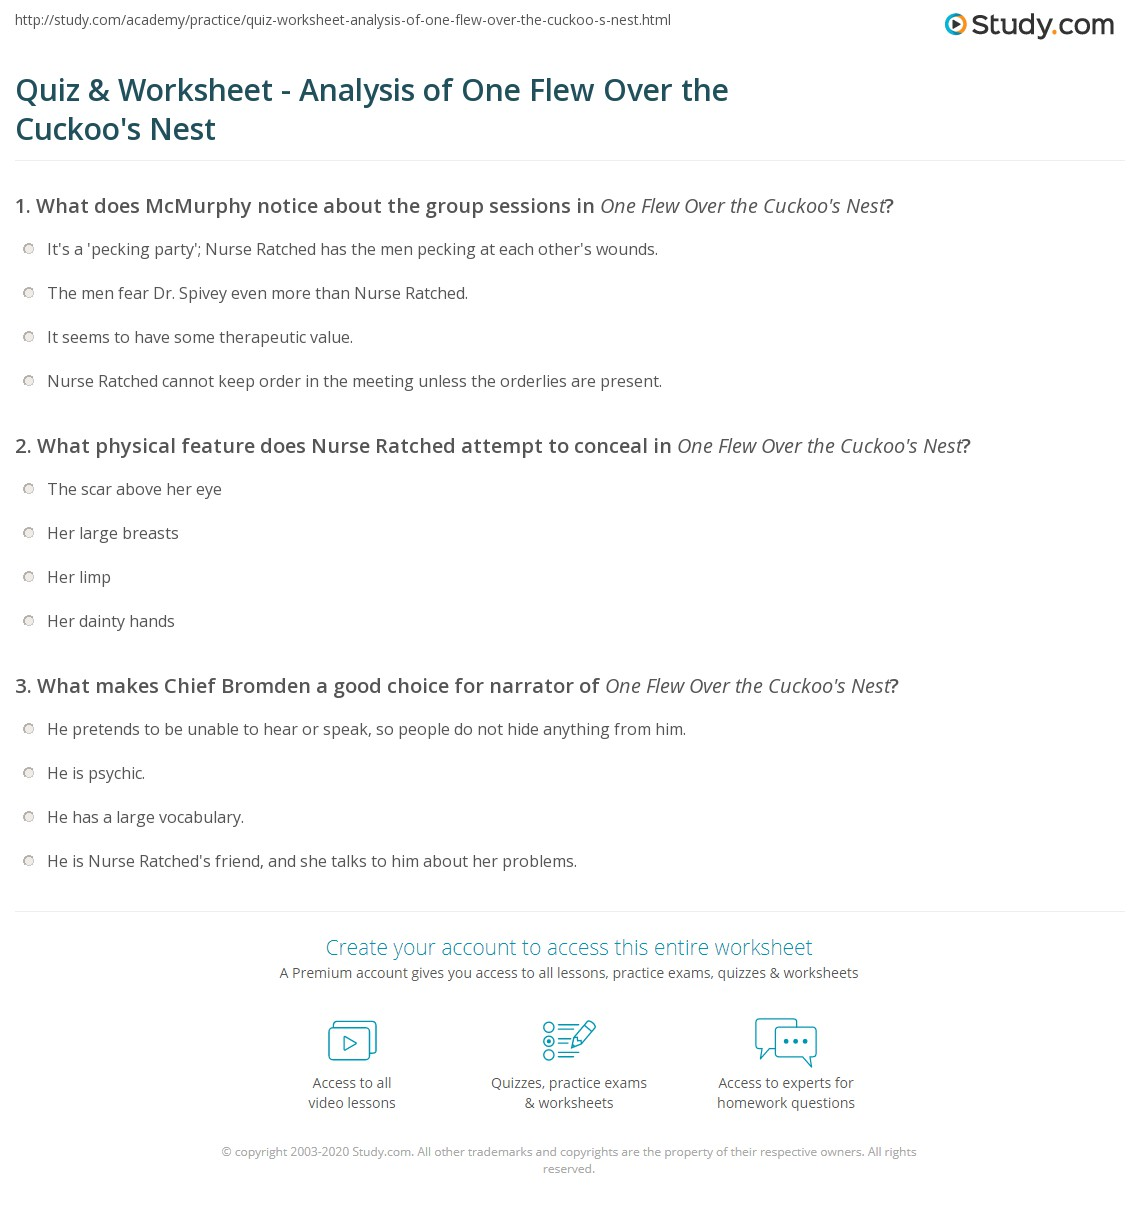 quiz worksheet analysis of one flew over the cuckoo s nest print one flew over the cuckoo s nest analysis worksheet